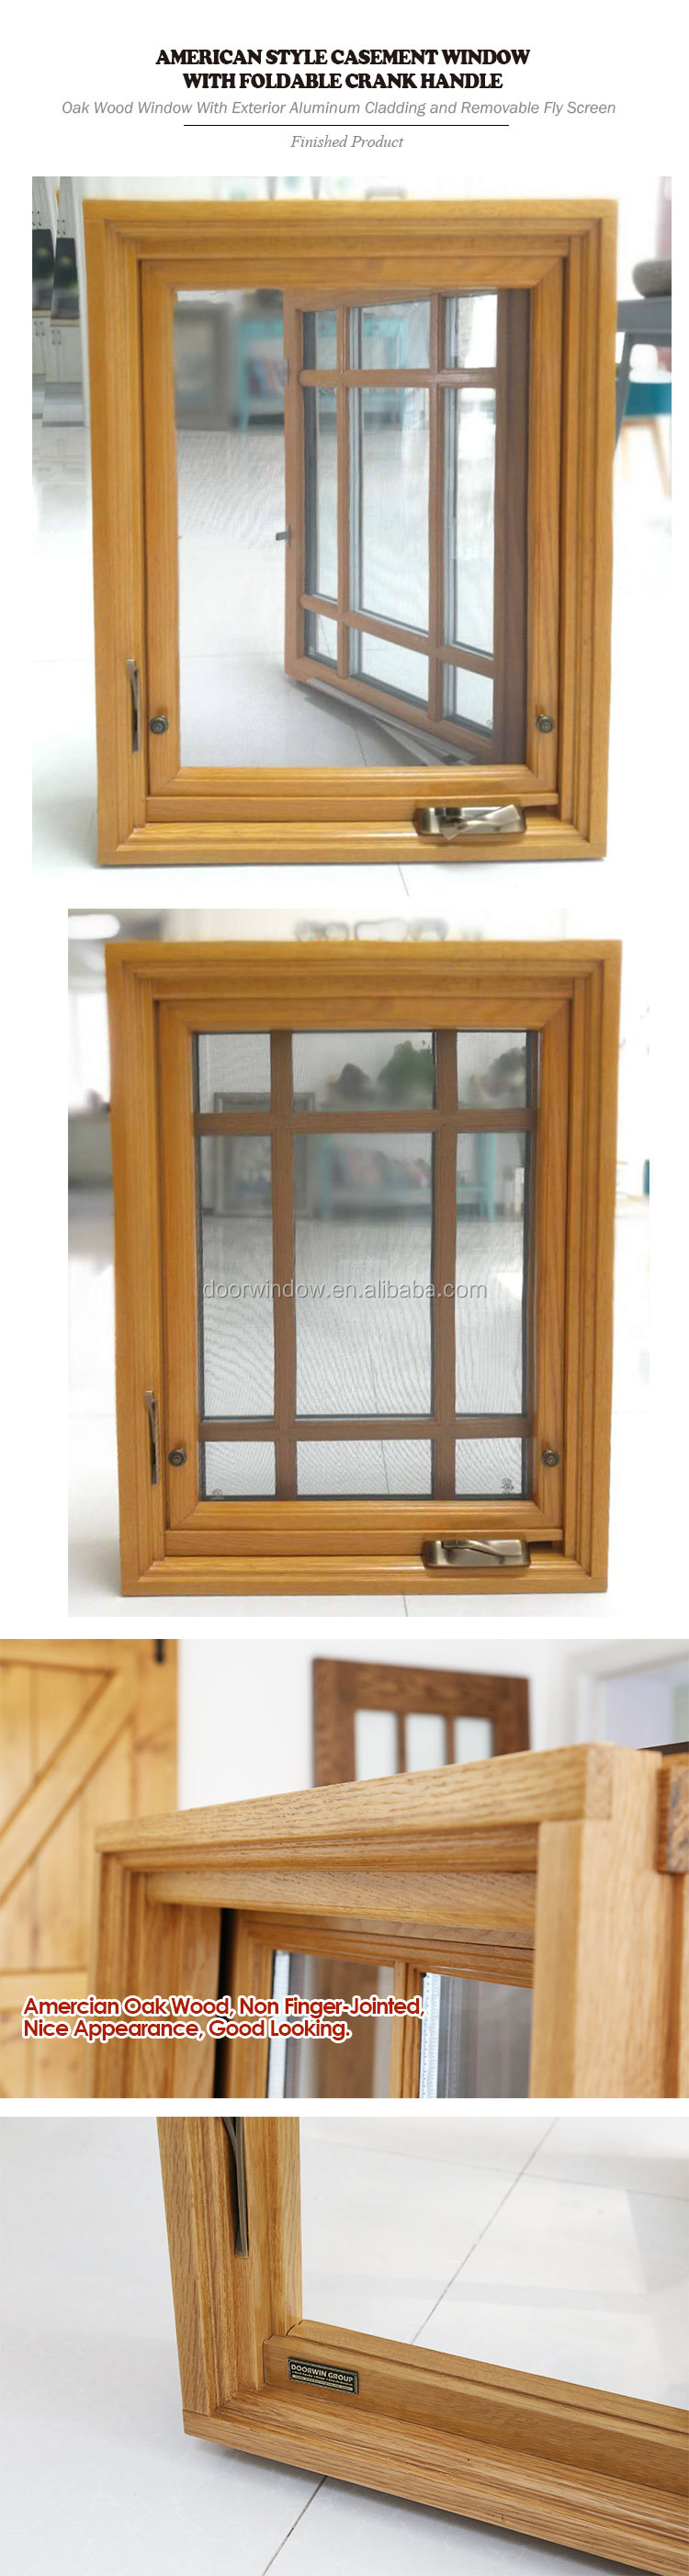 American standard wood aluminum frame crank open window with grill design and mosquito net